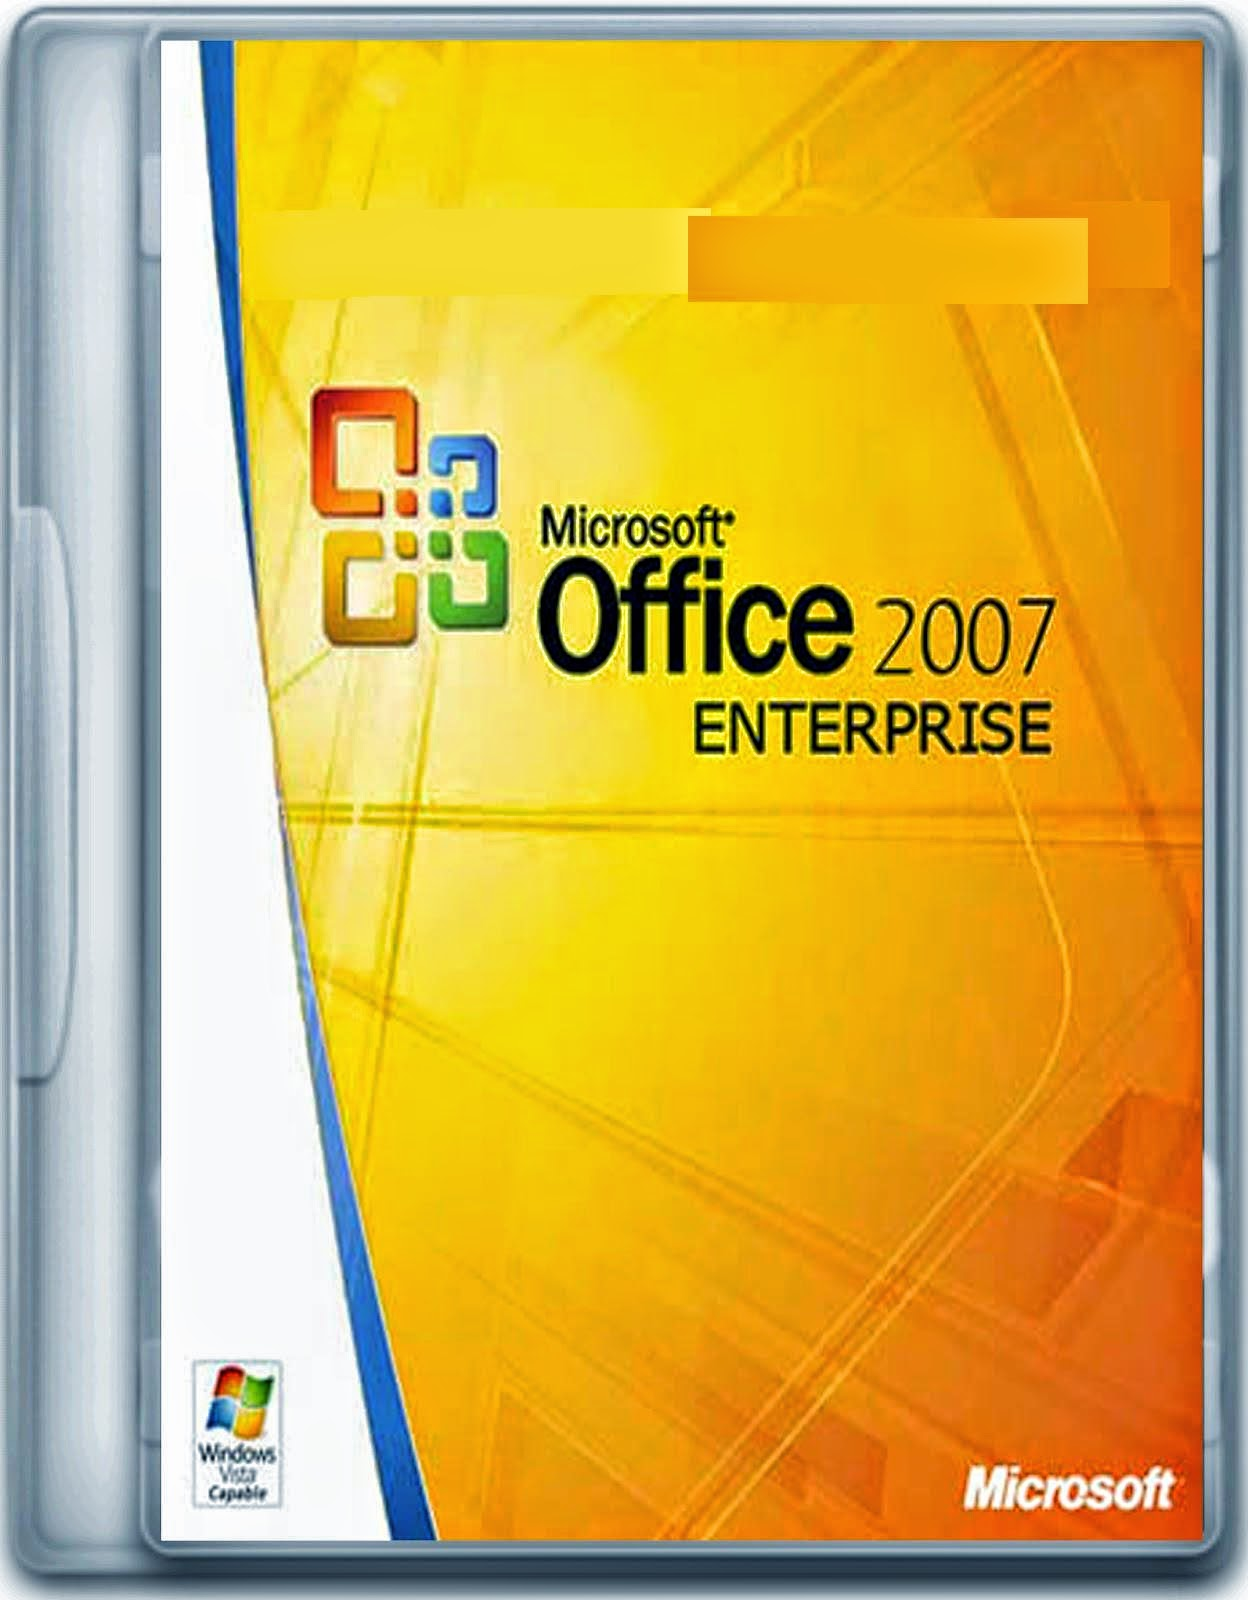 microsoft office 2007 enterprise key download